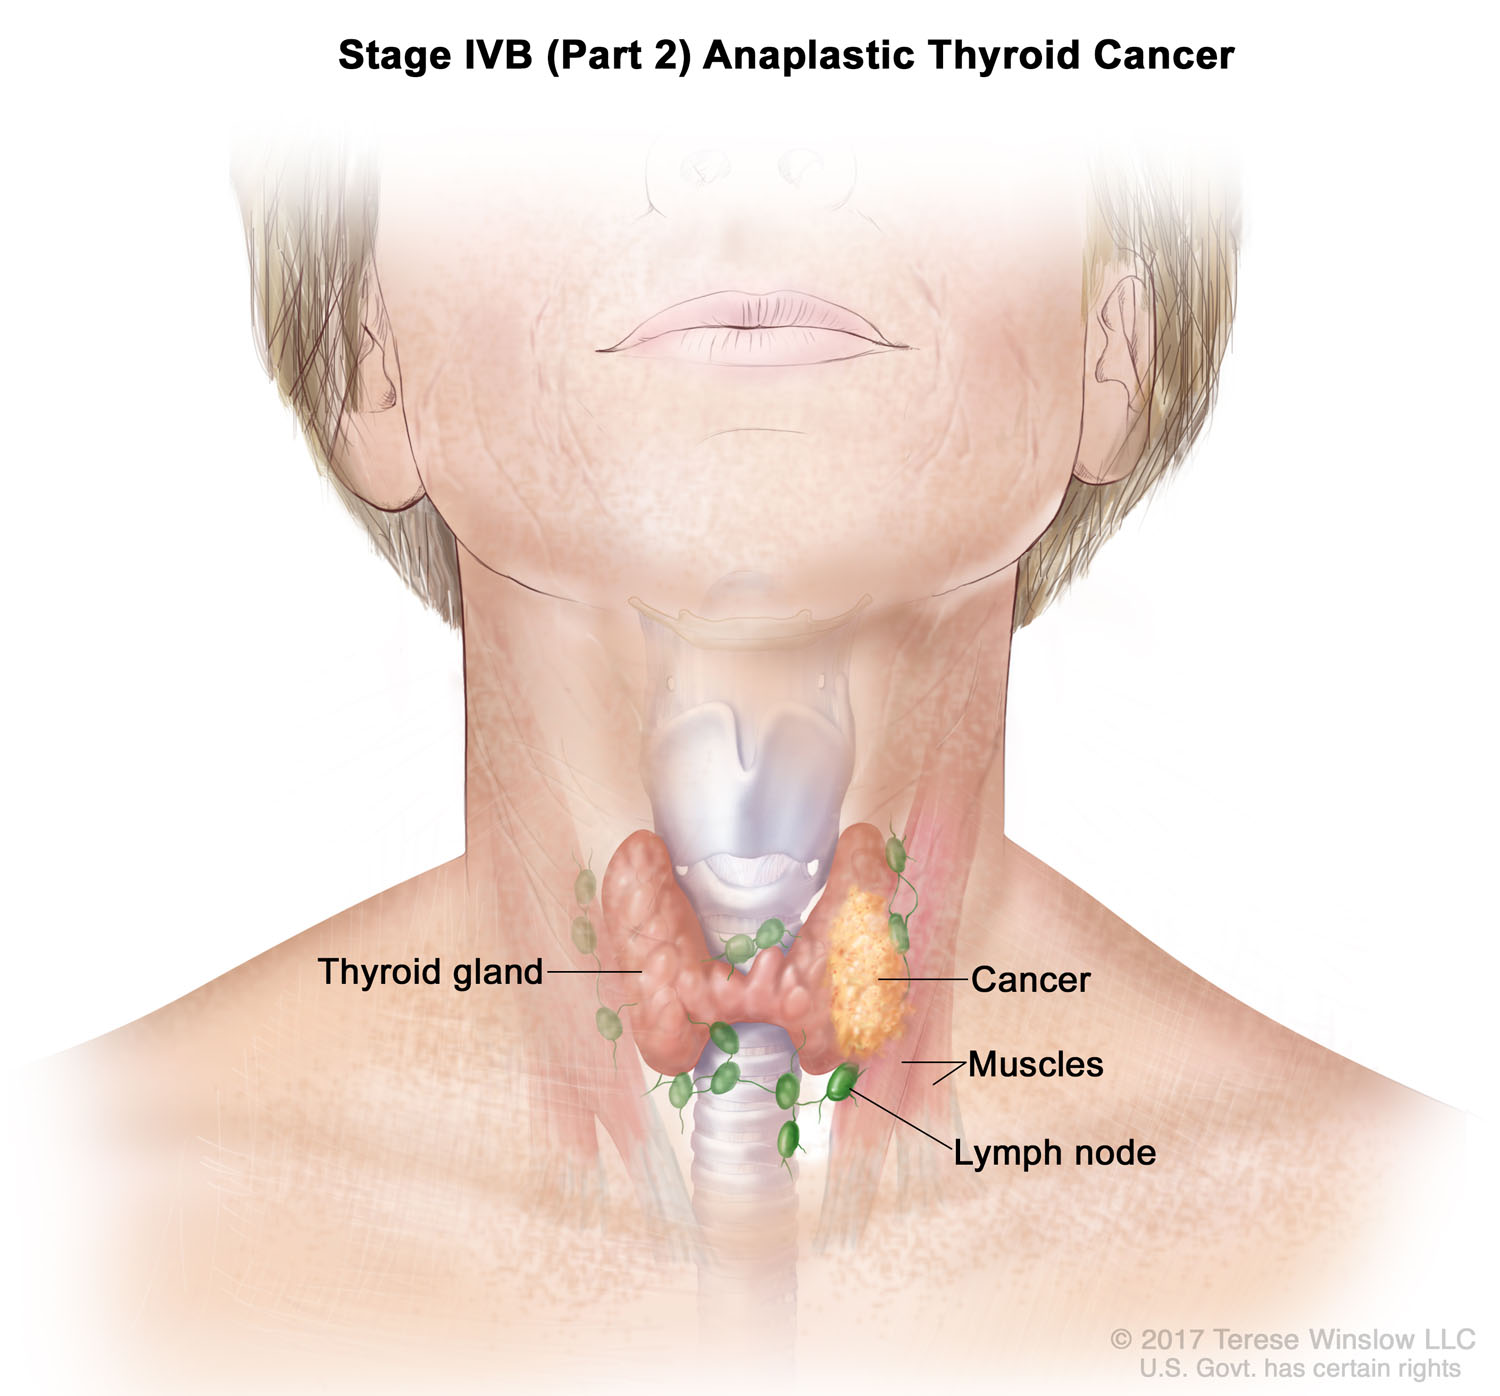 thyroid-cancer-anaplastic-stage4bpart2.jpg